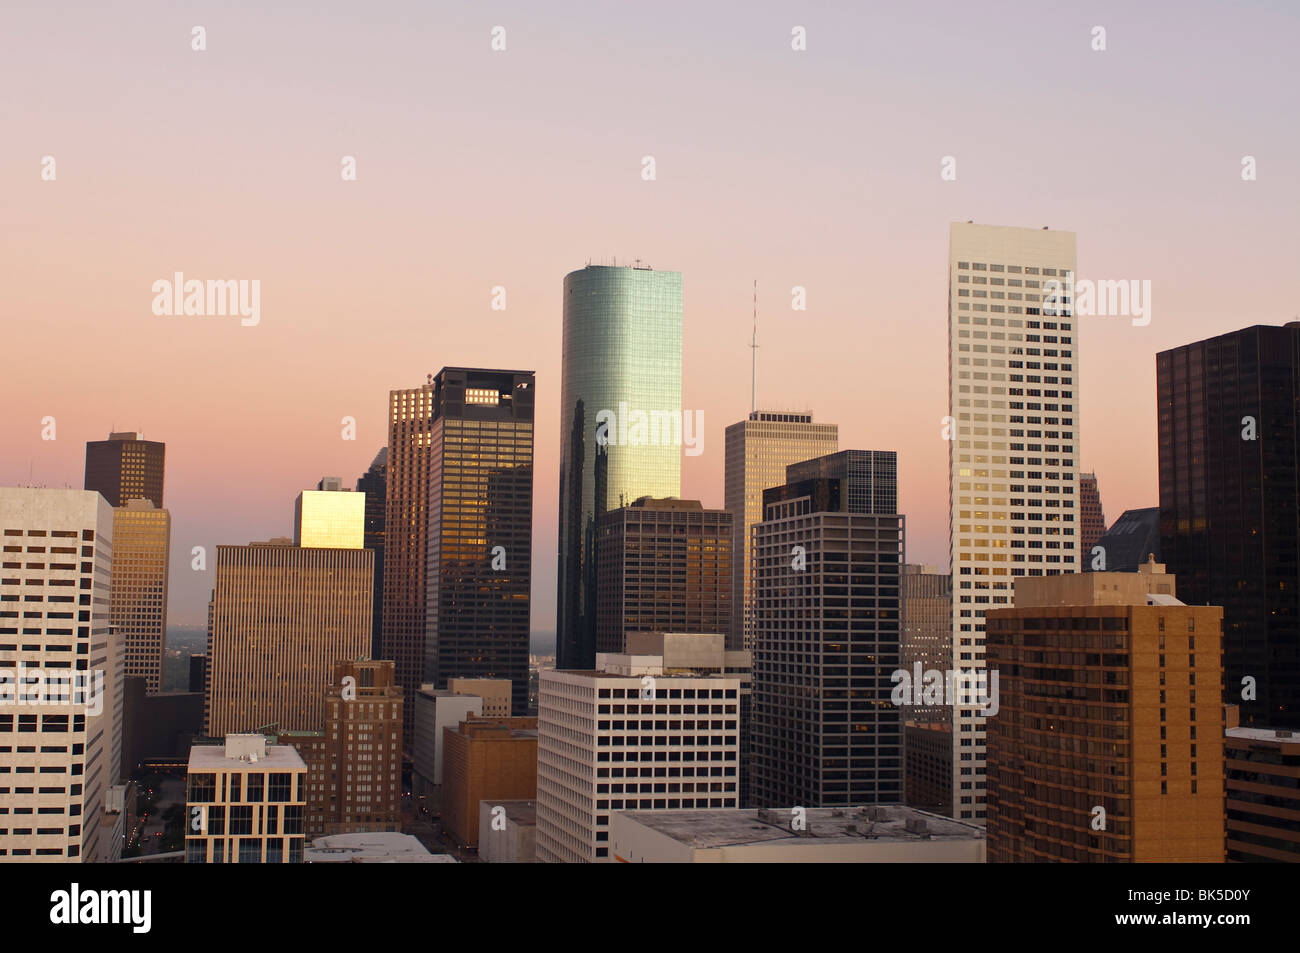 Skyline, Houston, Texas, United States of America, North America - Stock Image